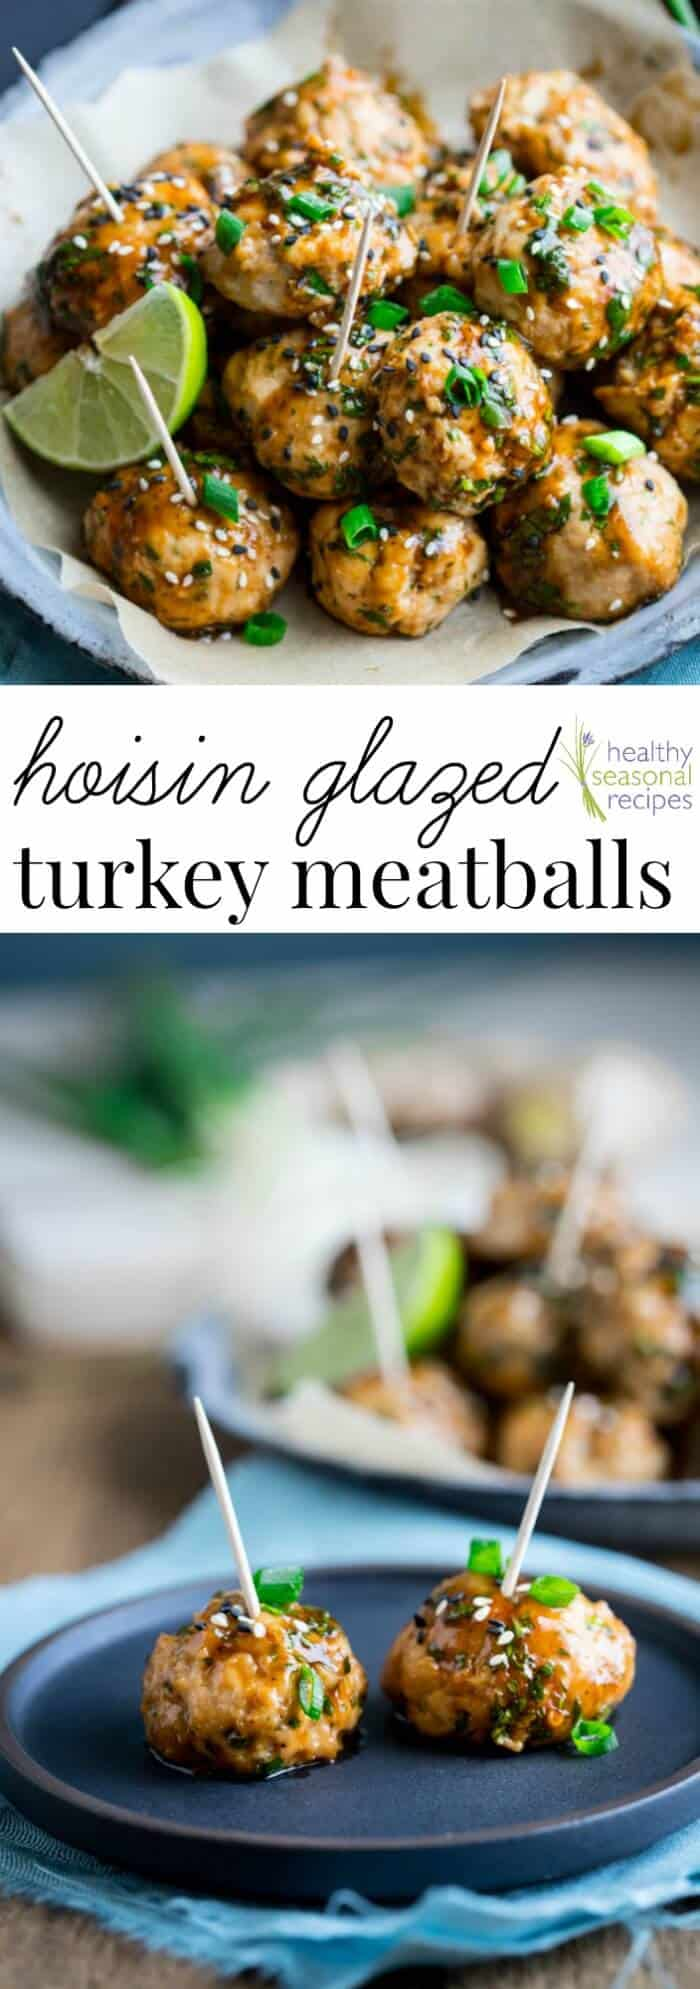 Hoisin Glazed Asian Turkey Meatballs - a fun new football snack to share with friends! Get the recipe on Healthy Seasonal Recipes by Katie Webster #football #superbowl #appetizer #snack #turkey #asian #hoisin #meatballs